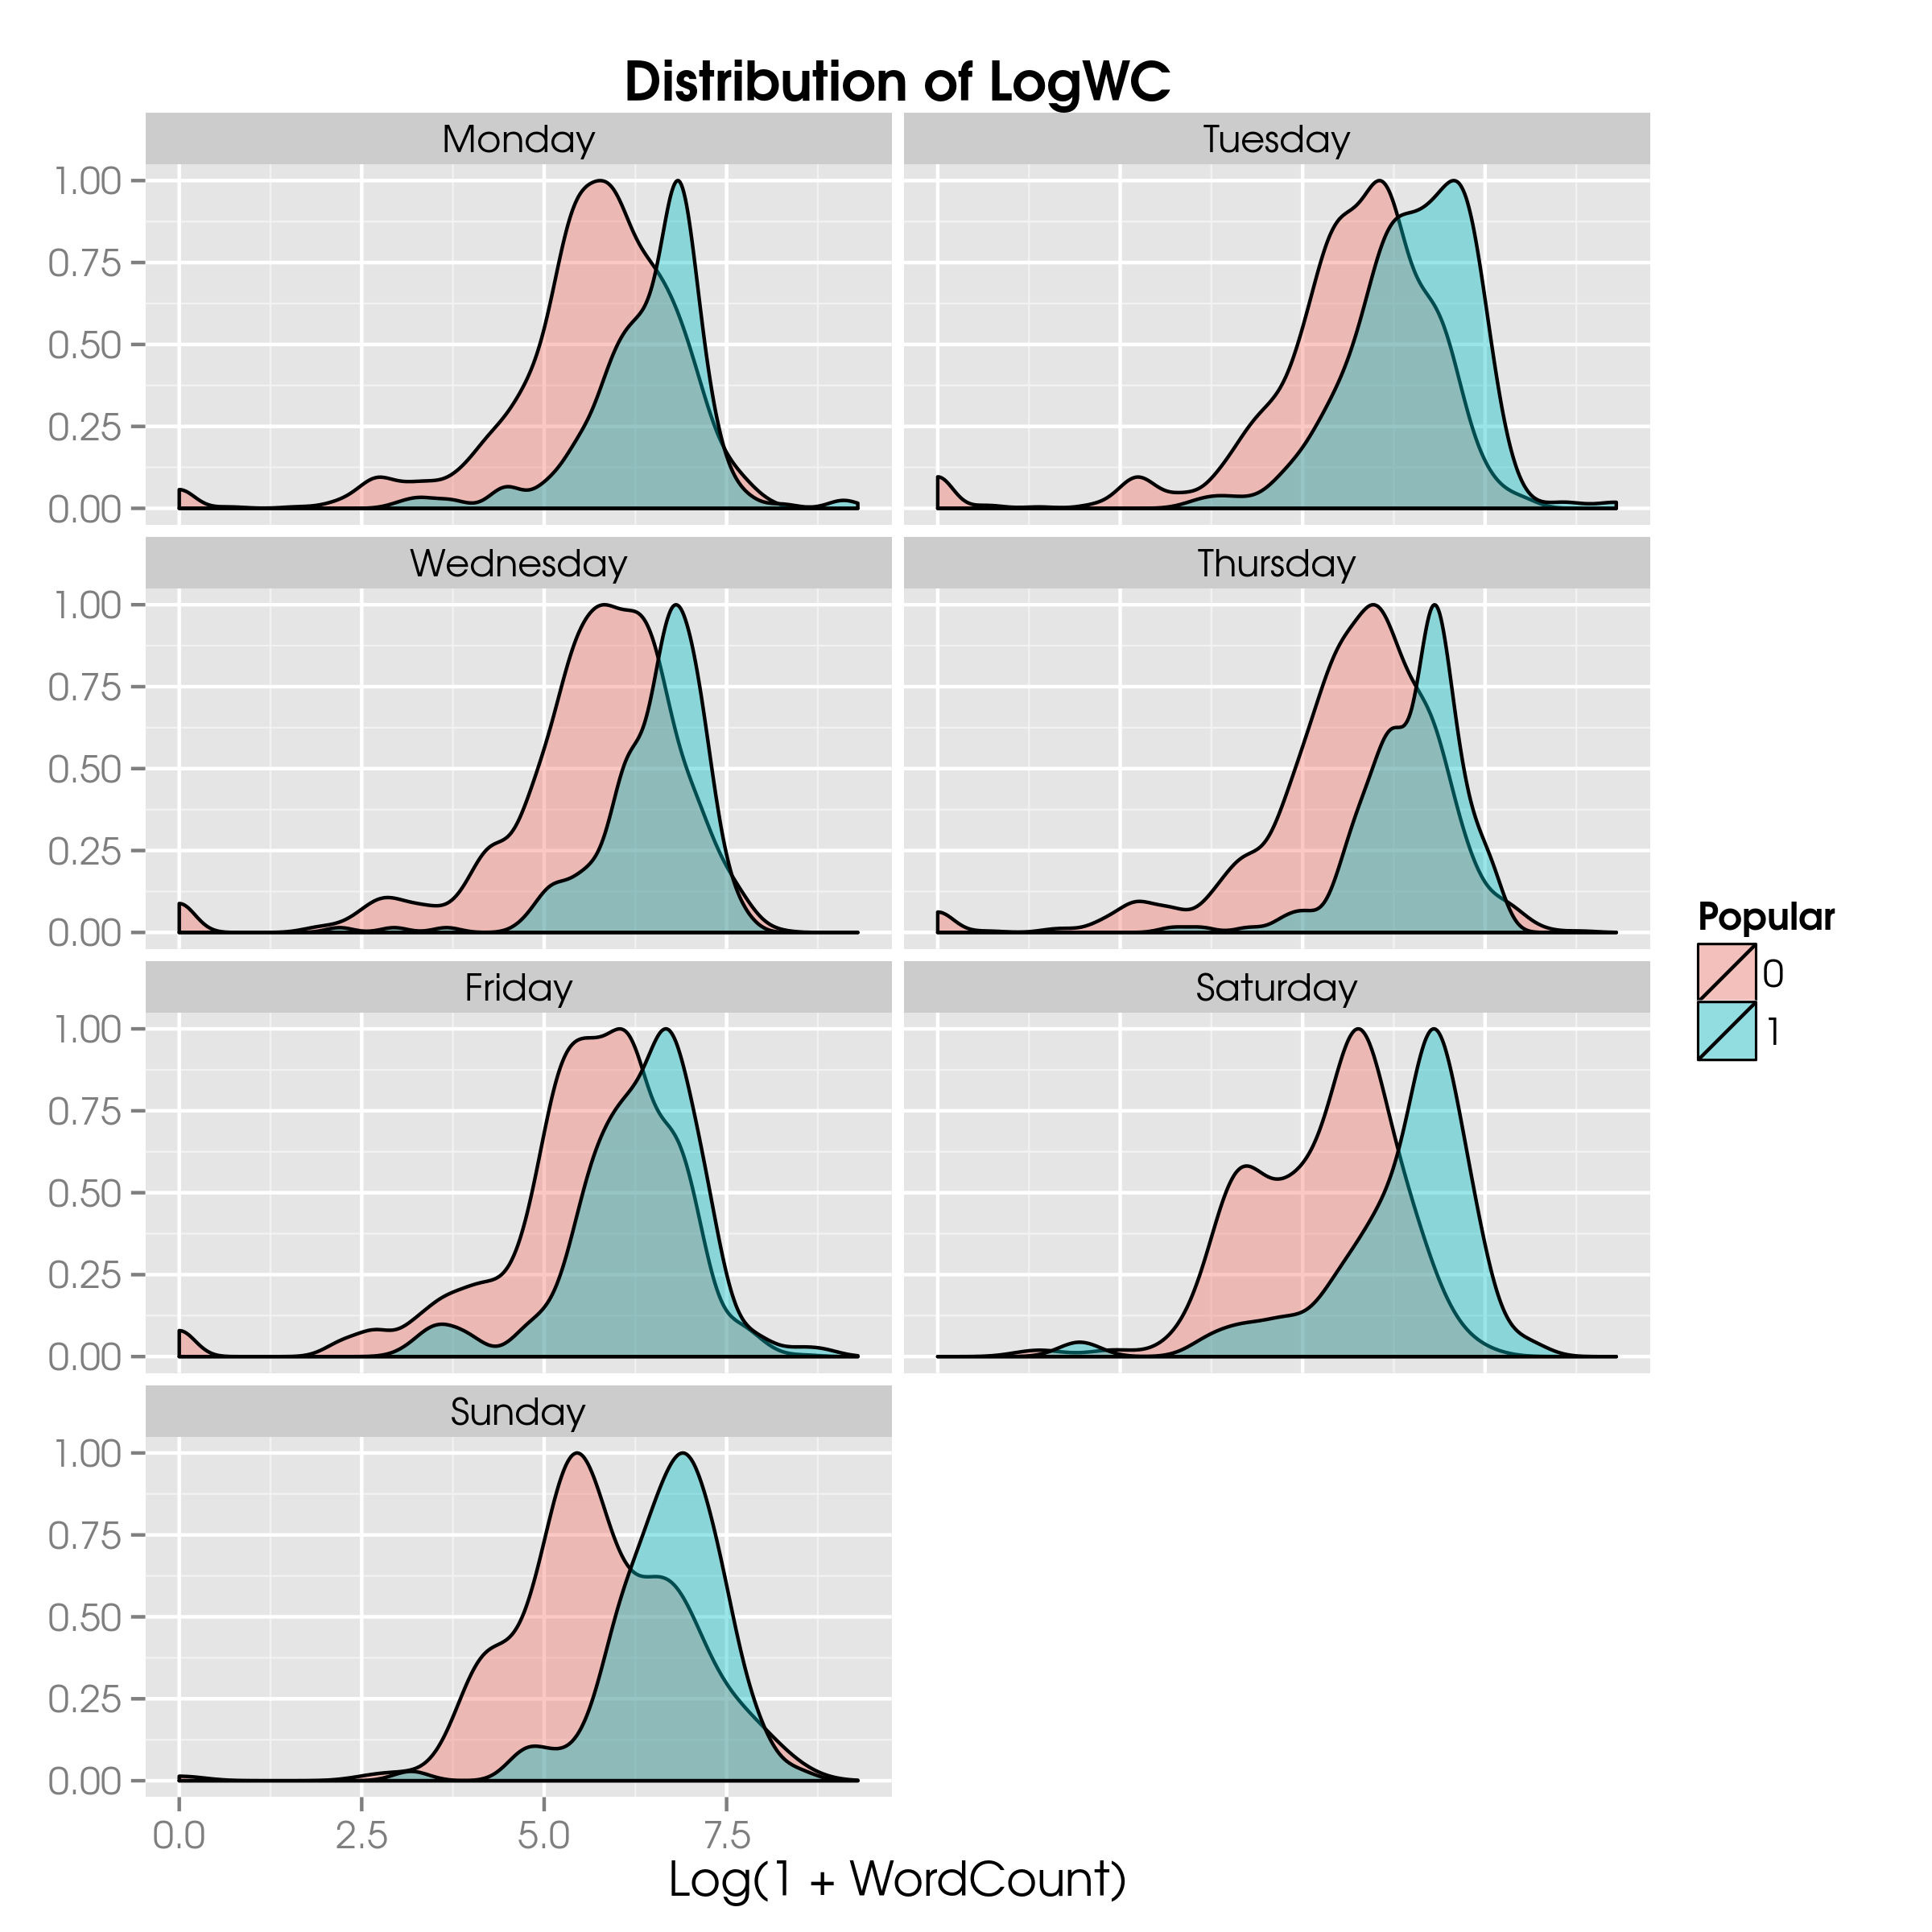 The distribution of `LogWC` by day